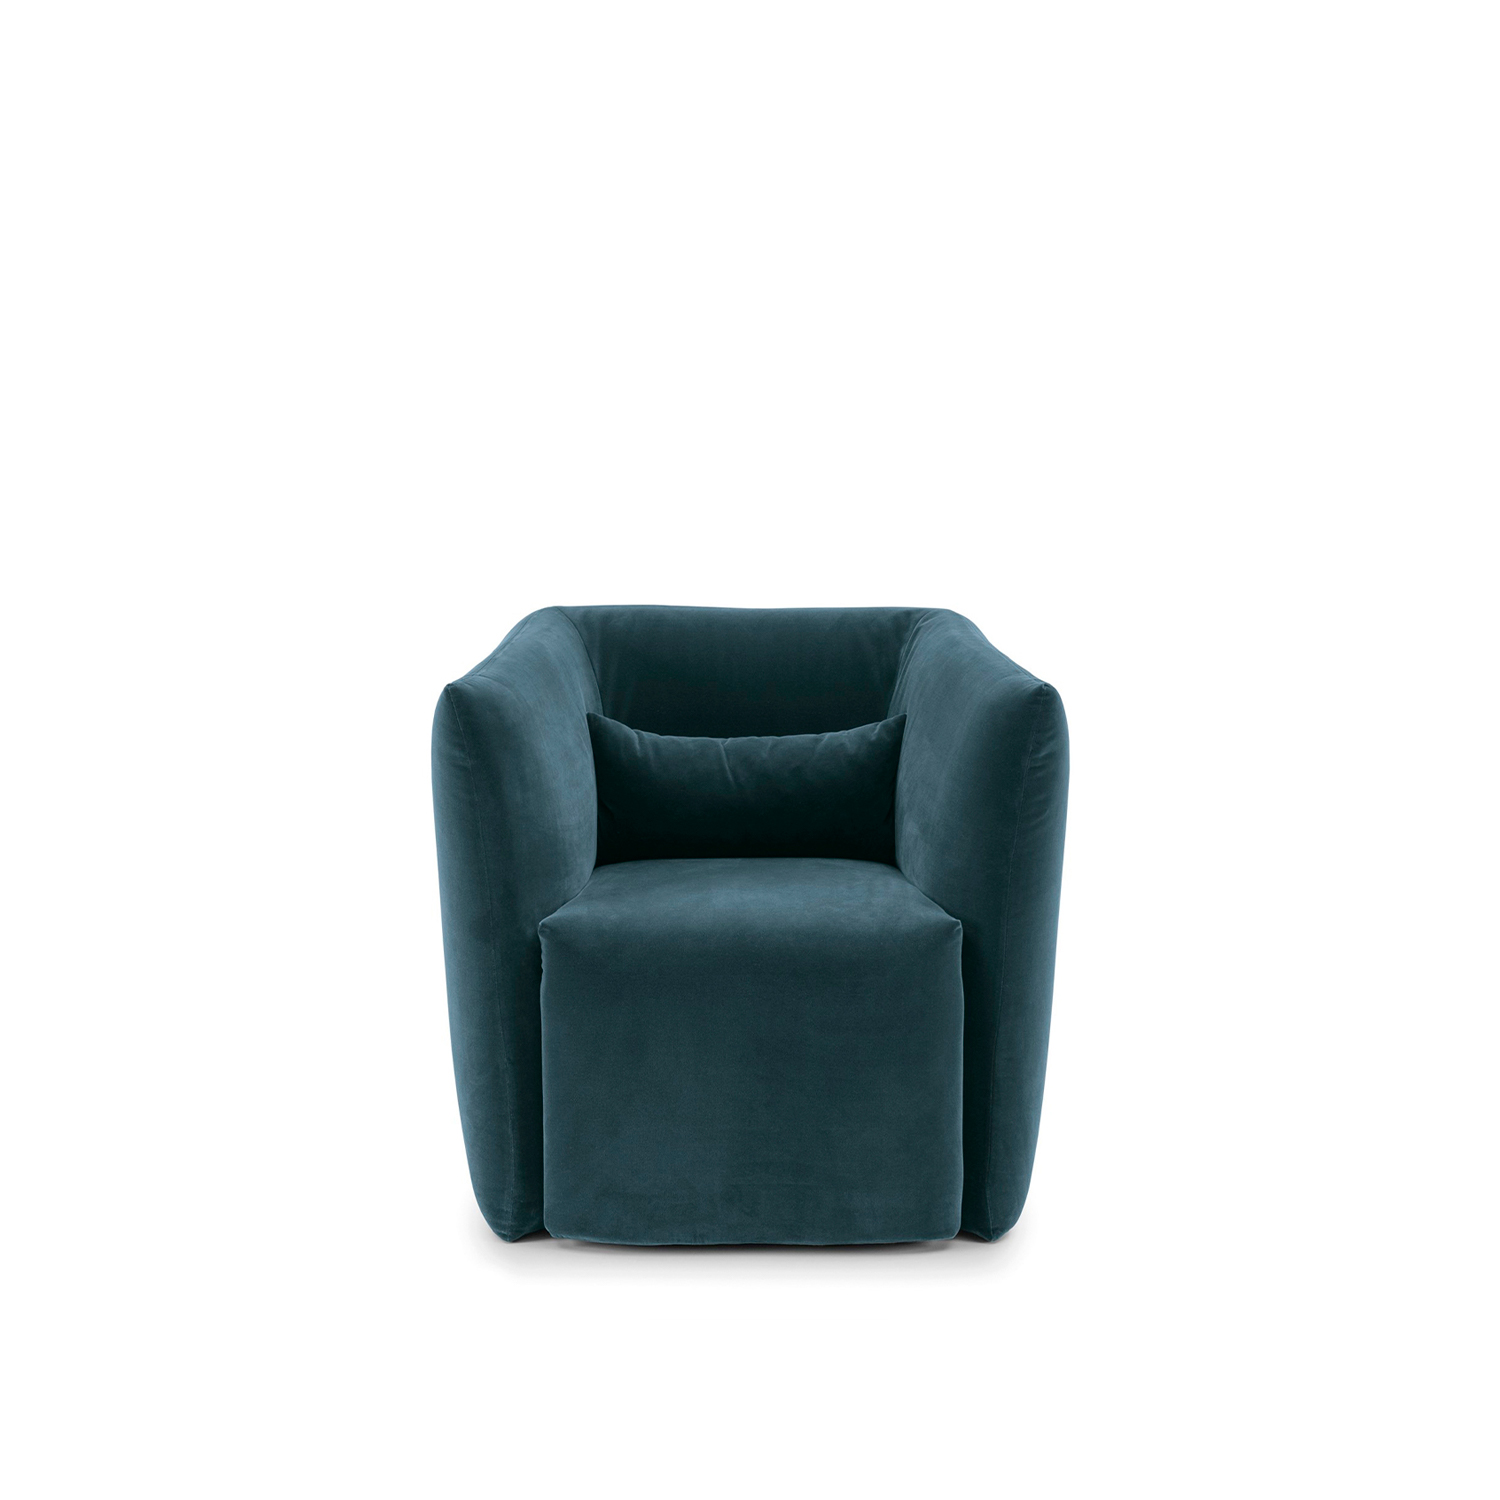 Jill Armchair - Jill armchair has soft and enveloping volumes, it stands out for its compact and comfortable shape: a transversal design with different tastes and atmospheres.‎ Not removable cover